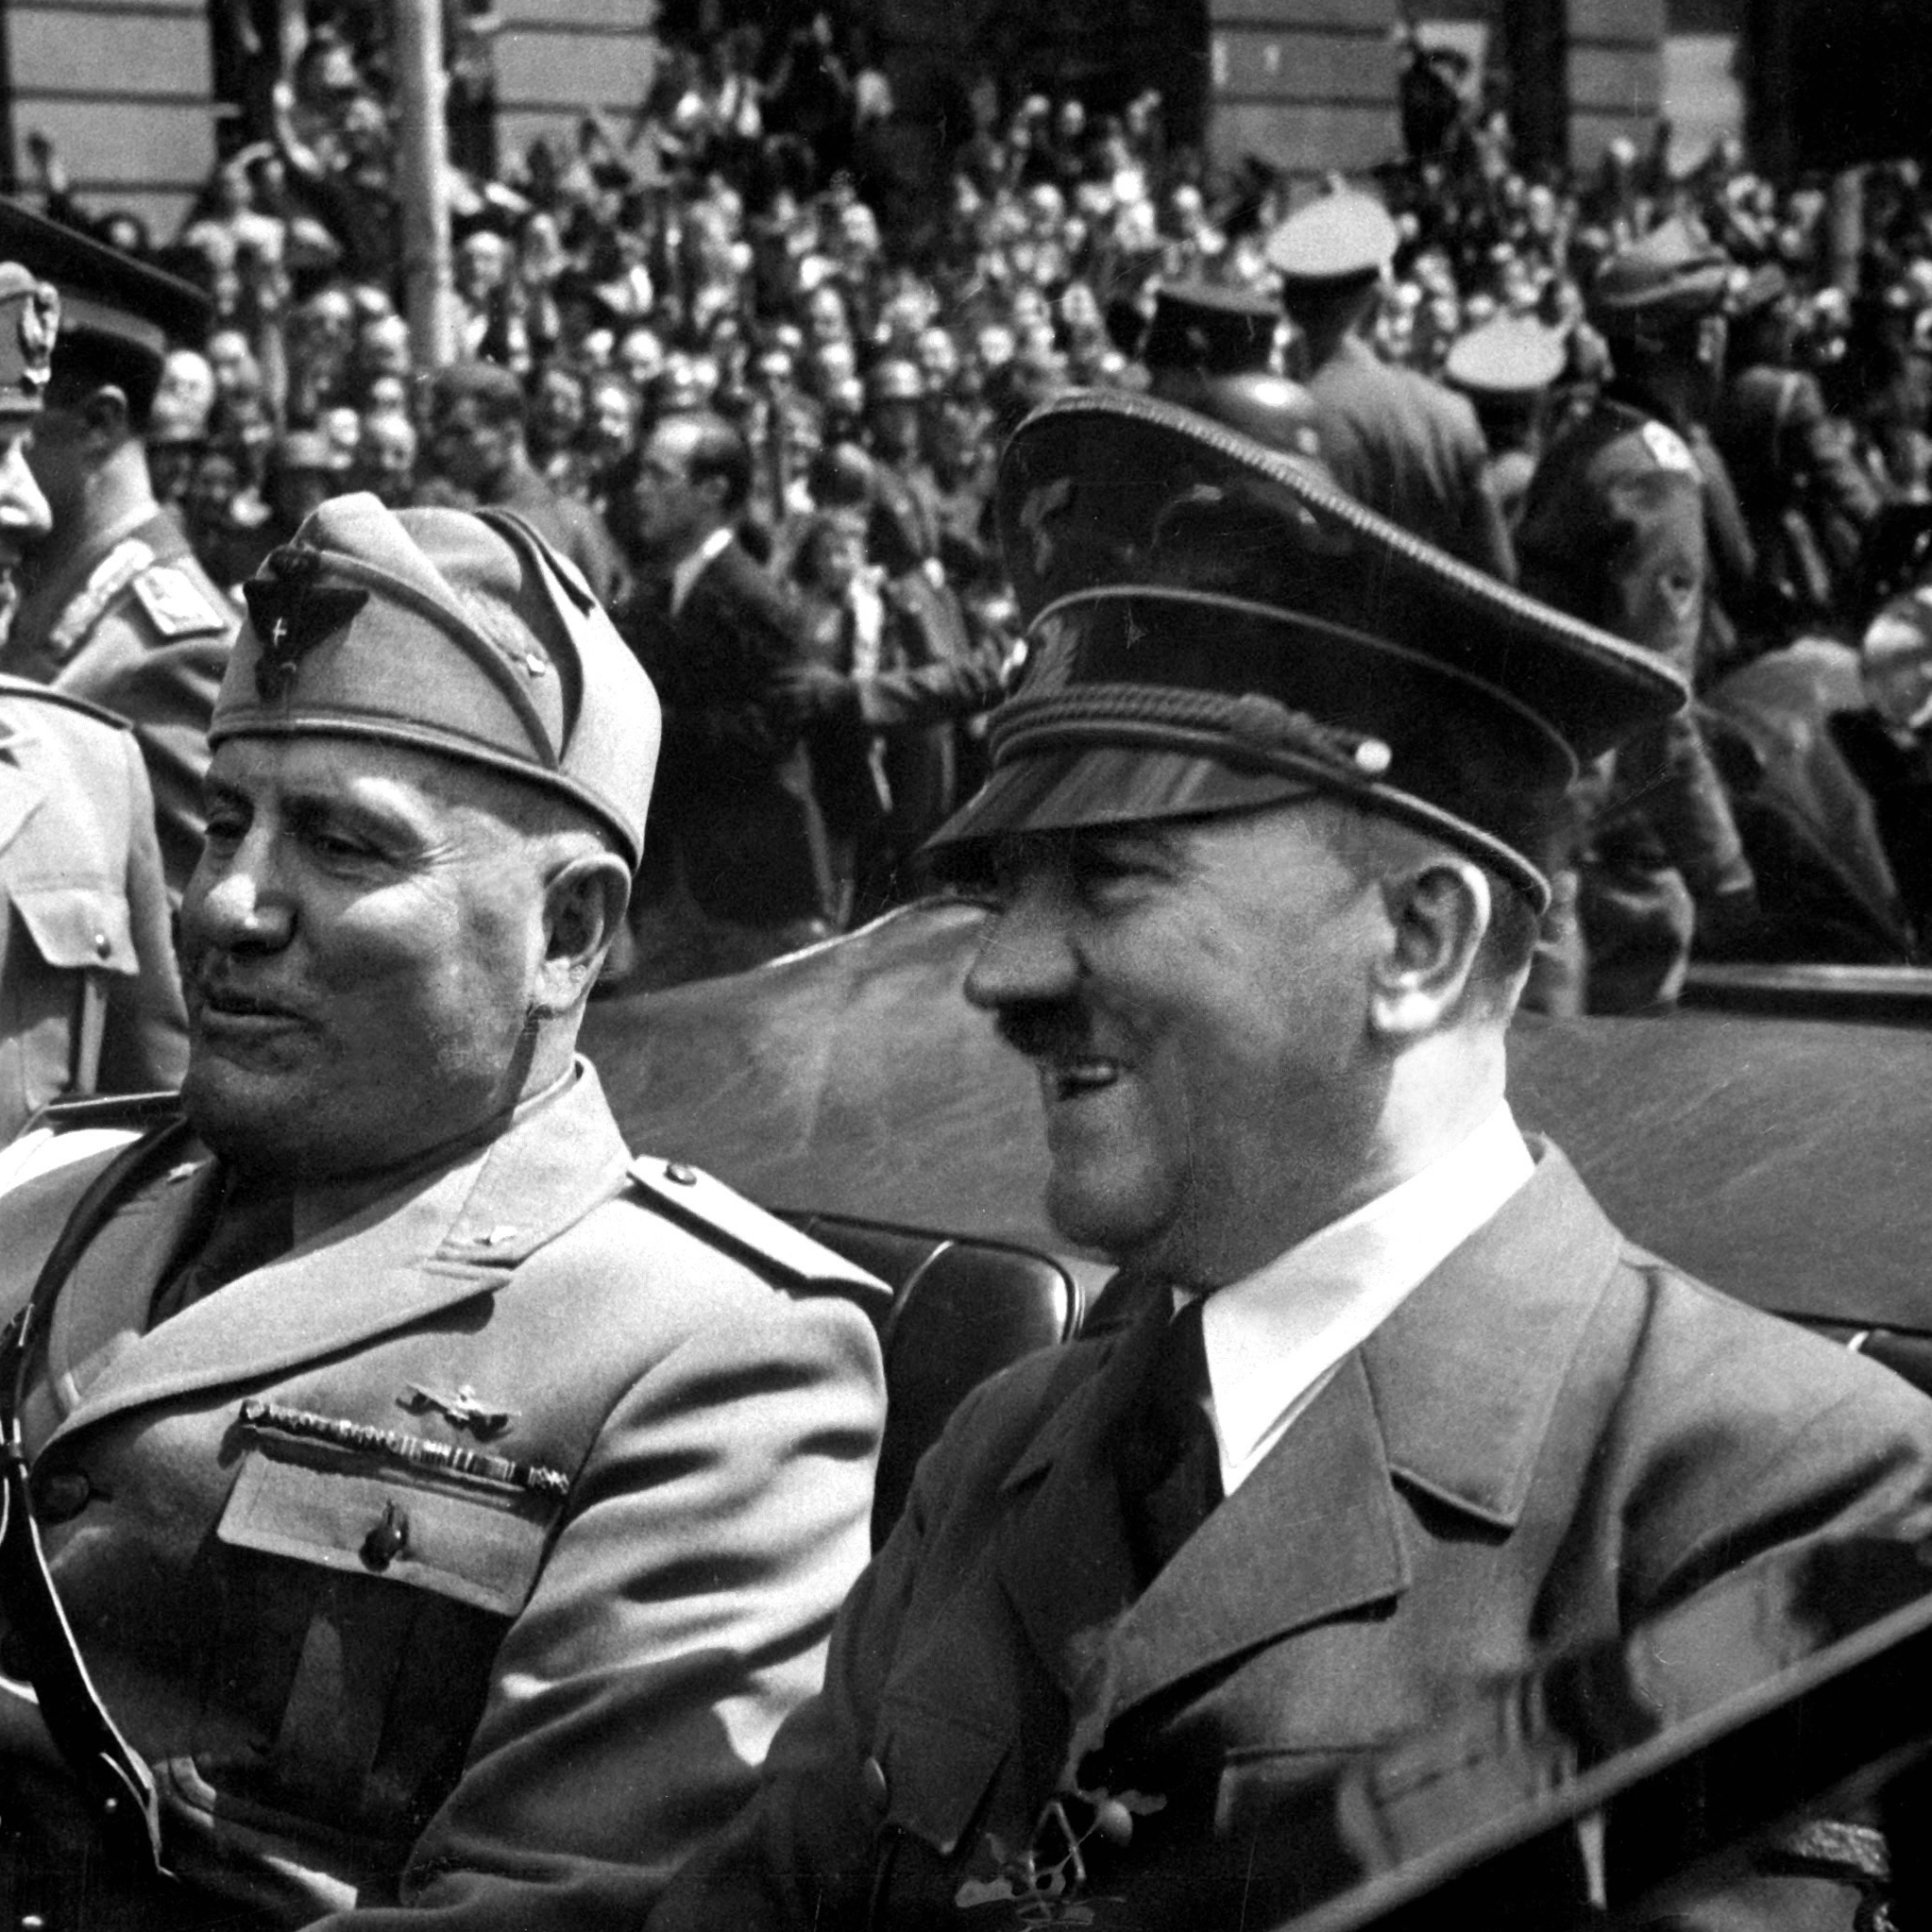 a history of hitler and nazi germany Alpha history's online textbook on nazi germany focuses on the rise of hitler and the period 1933 to 1939 contains articles, images, documents and more.